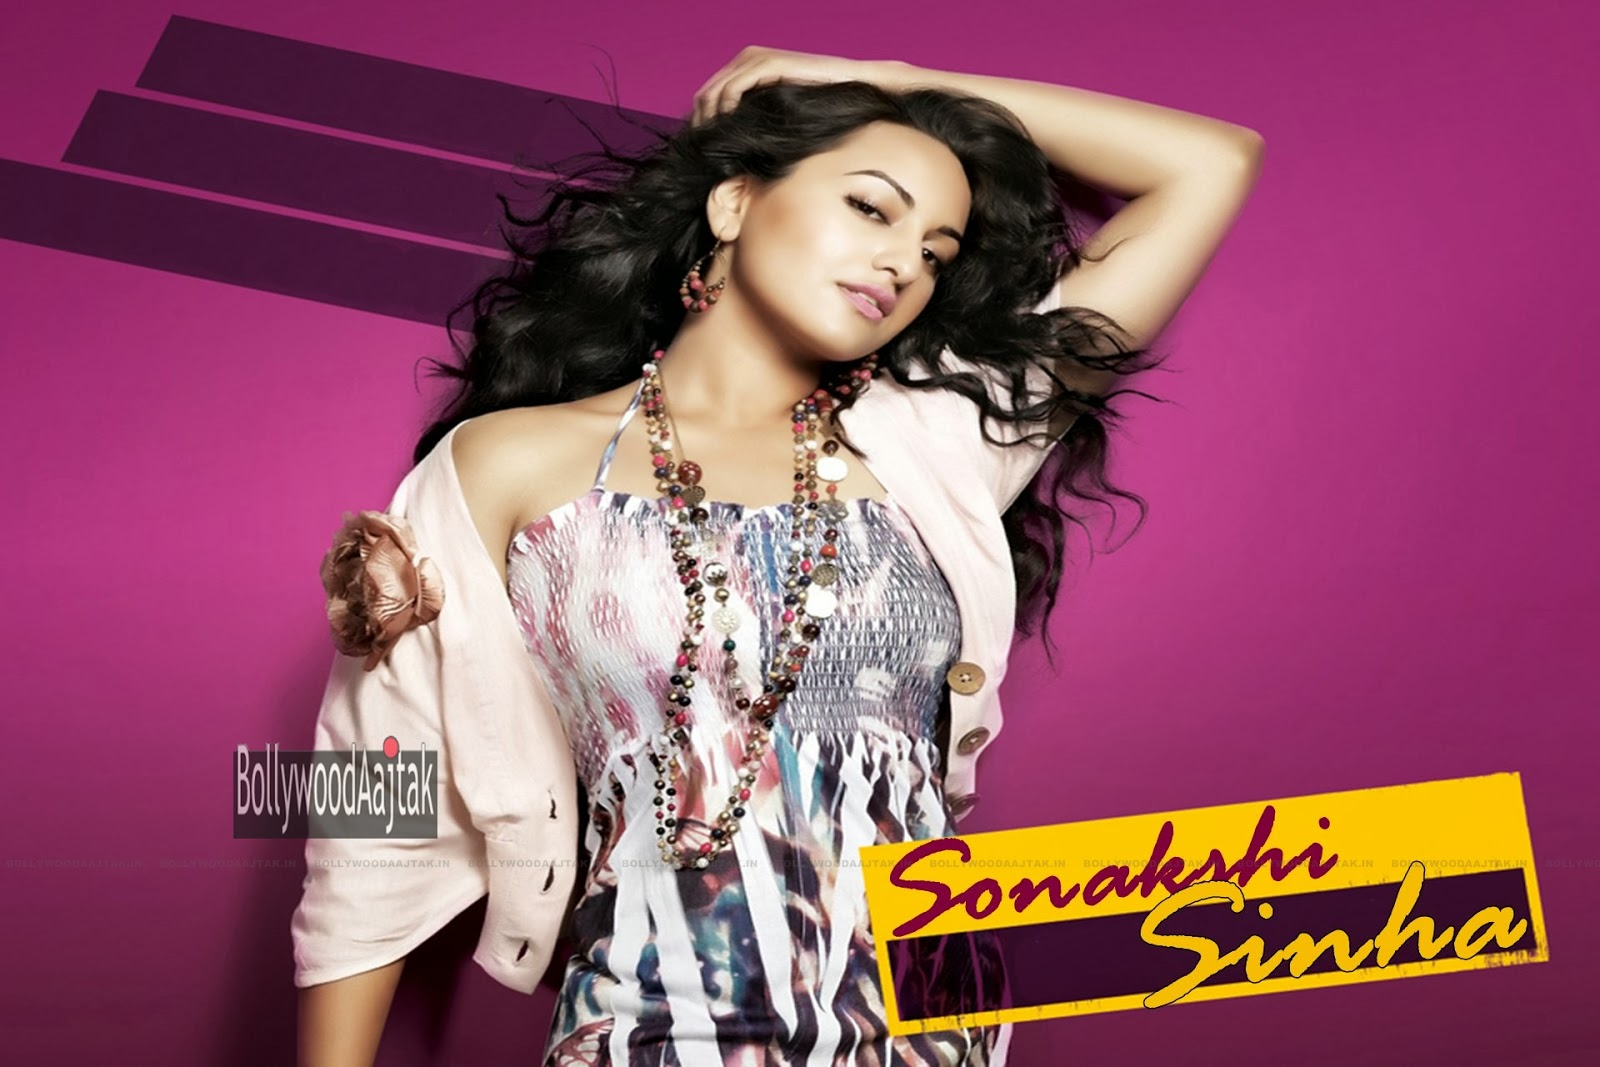 Wallpaper Of Sonakshi Sinha: HQ Hot Wallpapers: Sonakshi Sinha HD Wallpapers